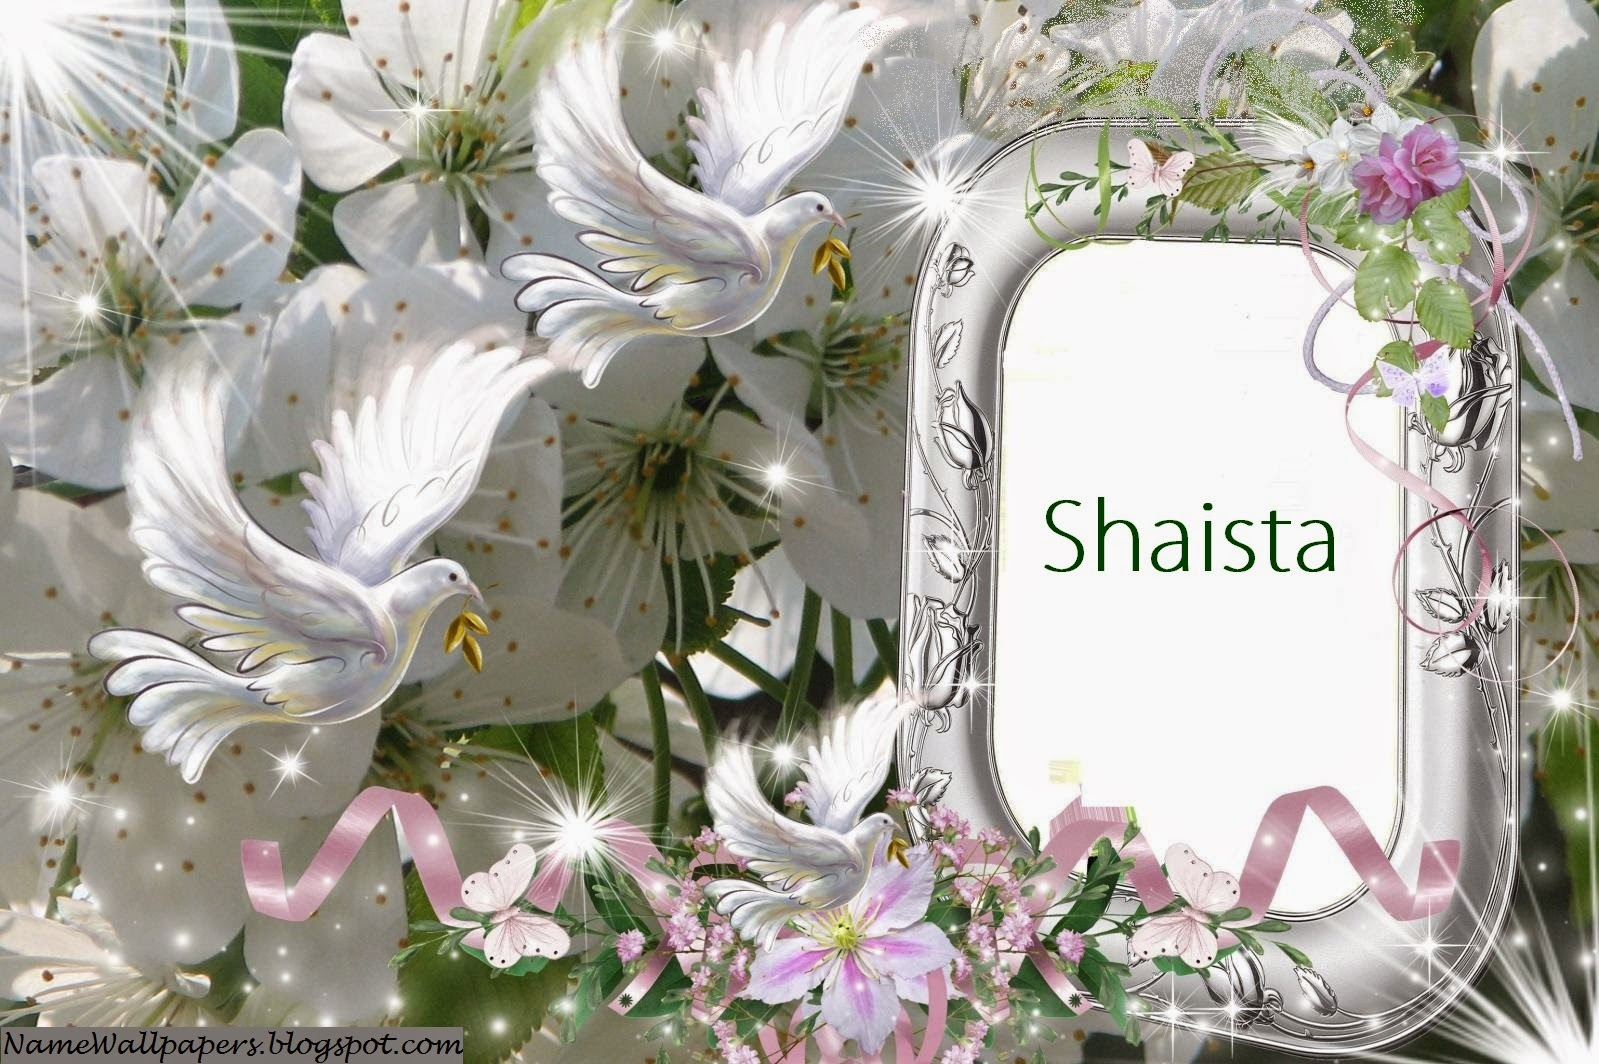 Shaista Name Wallpaper